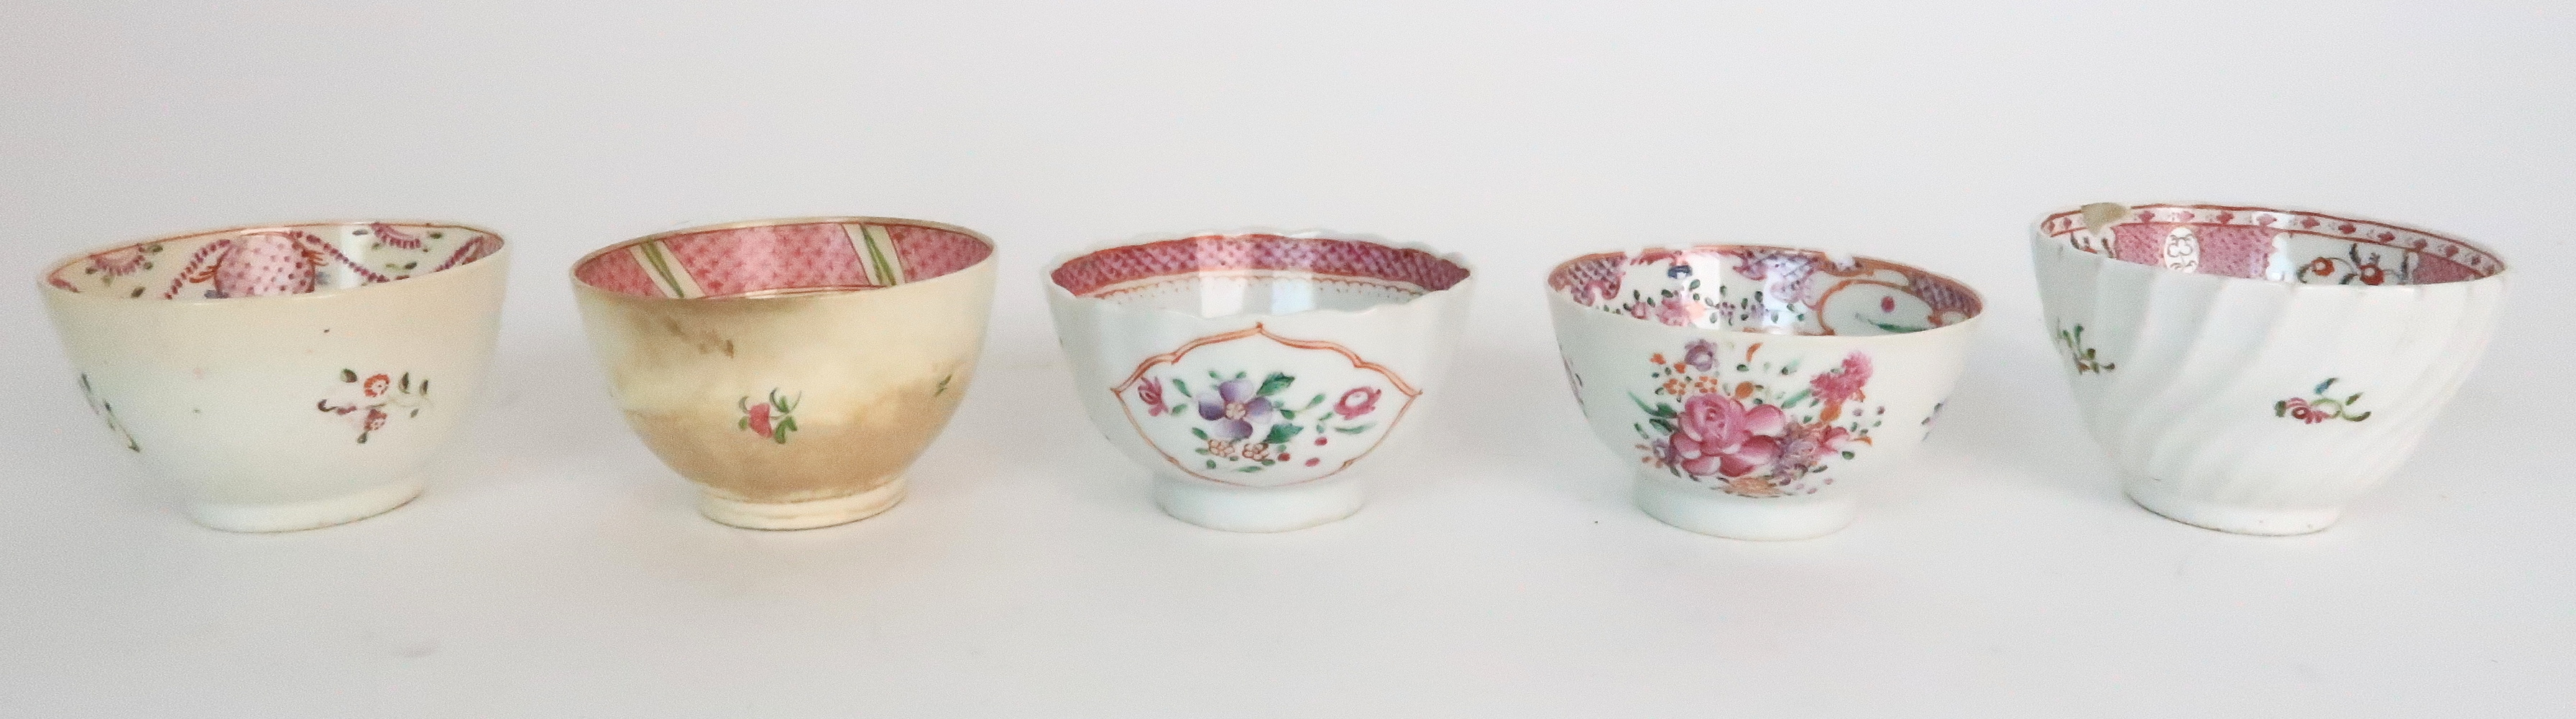 A COLLECTION OF TEA BOWLS AND SAUCERS each with pink scale and floral decoration including New Hall; - Image 5 of 12